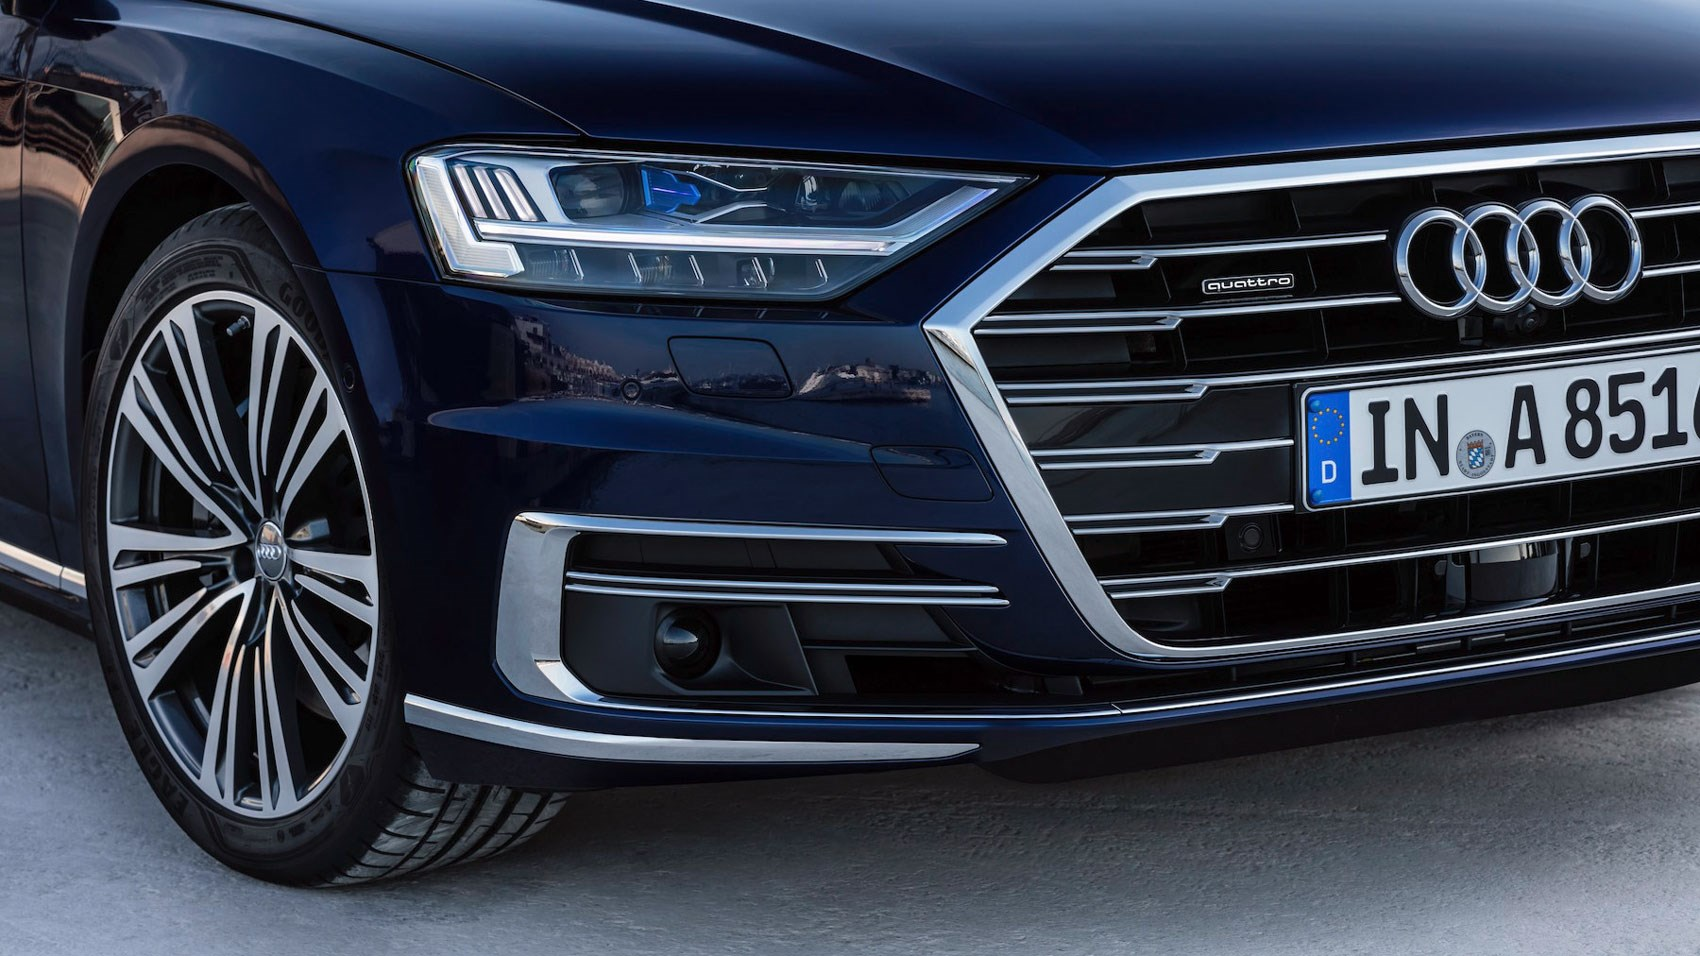 Audi A7 Sportback arrives sporting Hybrid tech - and it looks NEW too